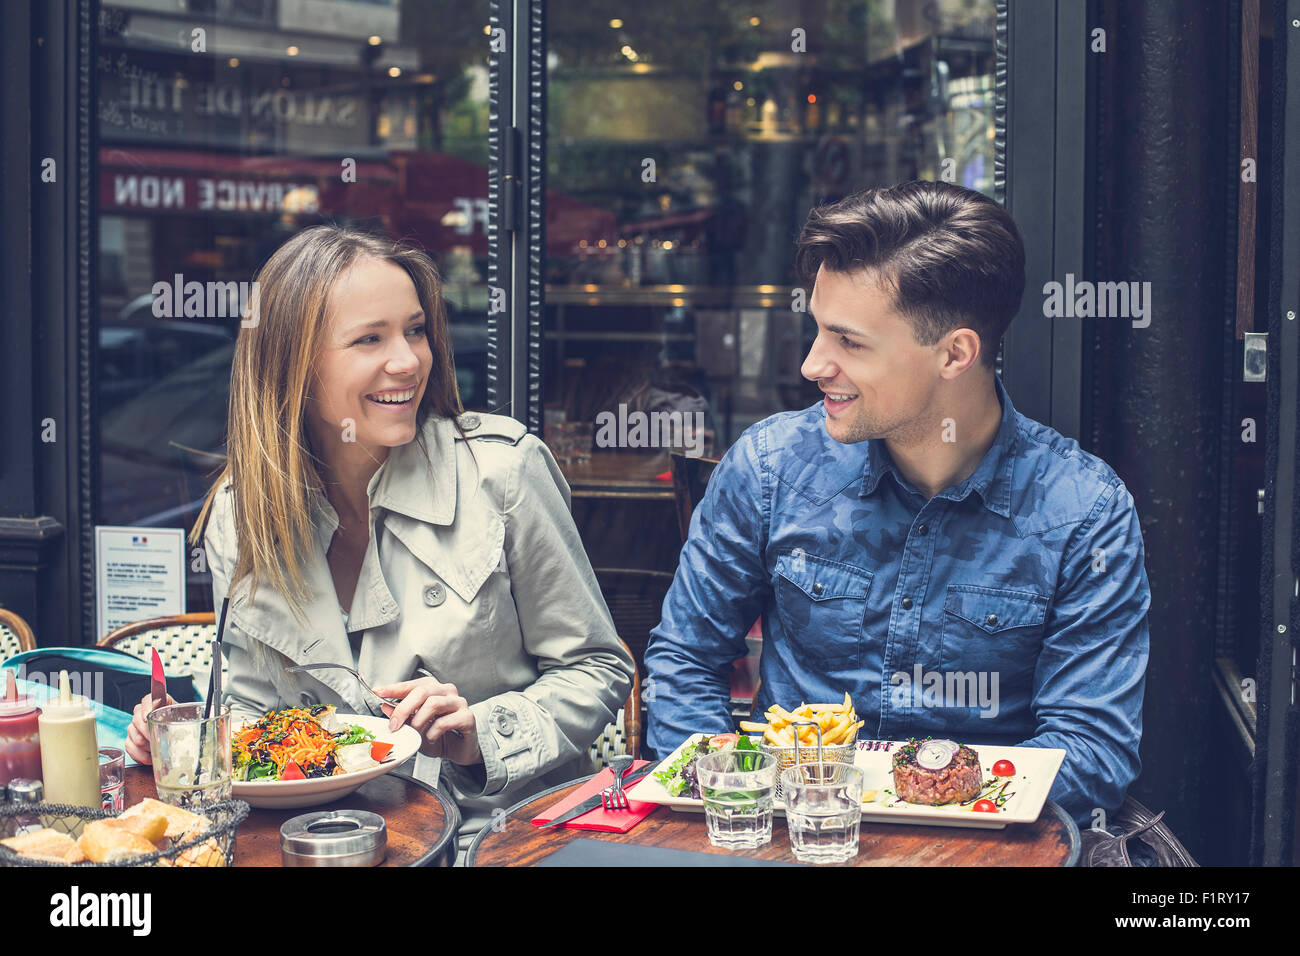 Paris, Couple dating at the restaurant - Stock Image